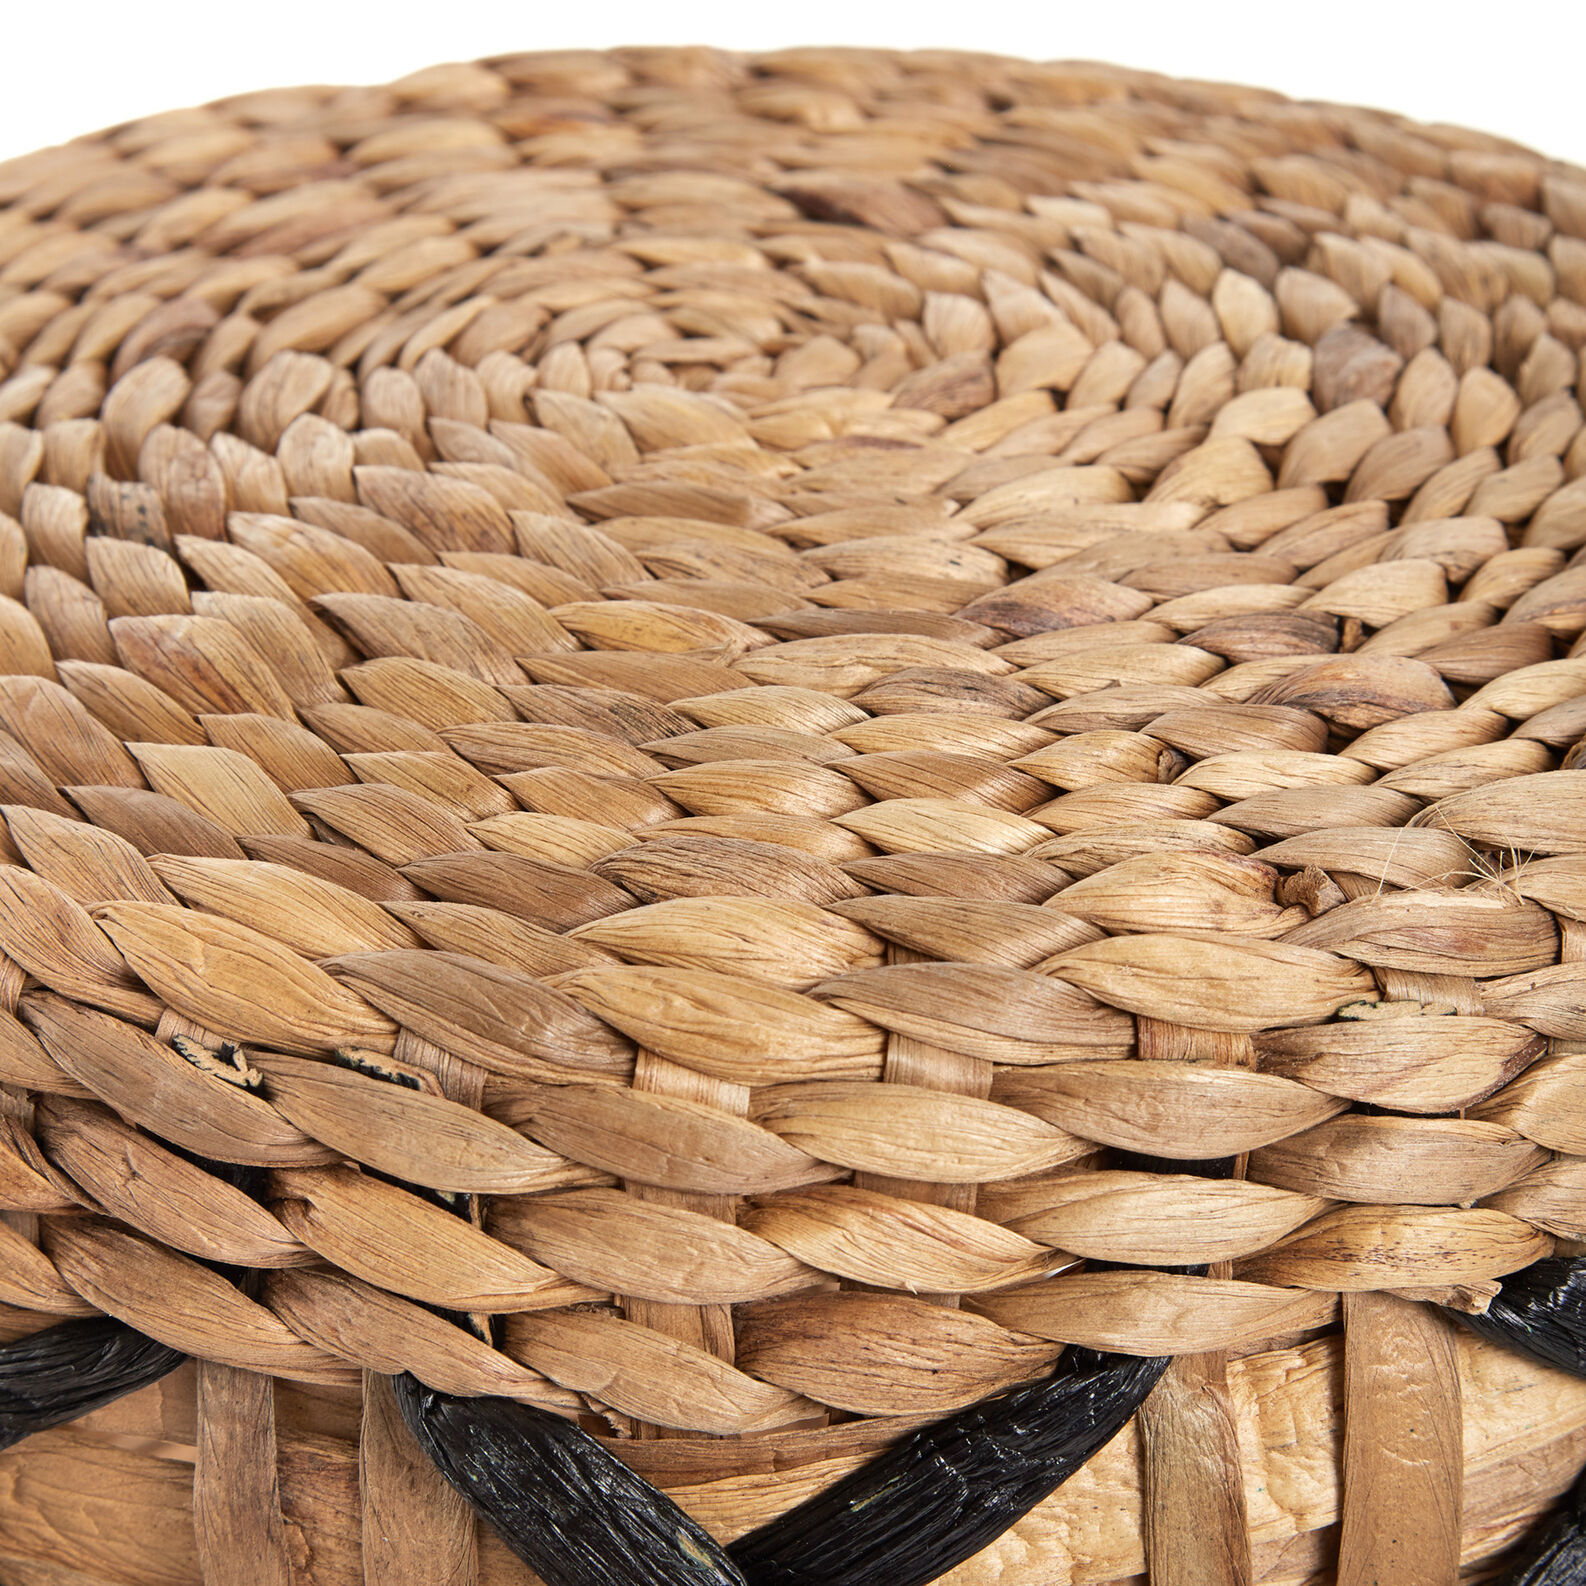 Water hyacinth stool, woven by hand.